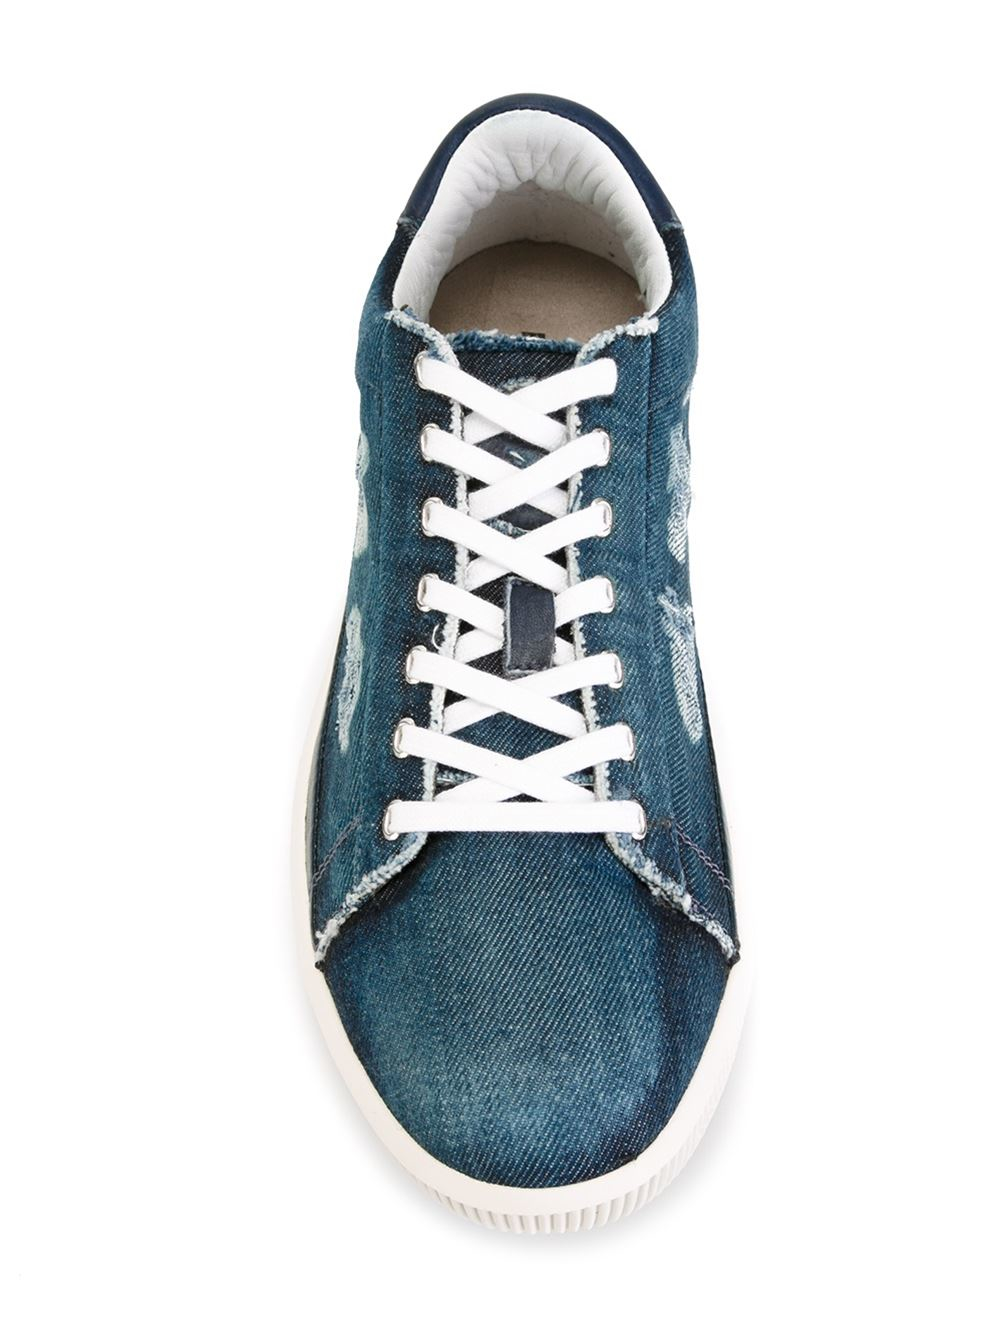 Diesel Distressed Denim Sneakers In Blue For Men Lyst